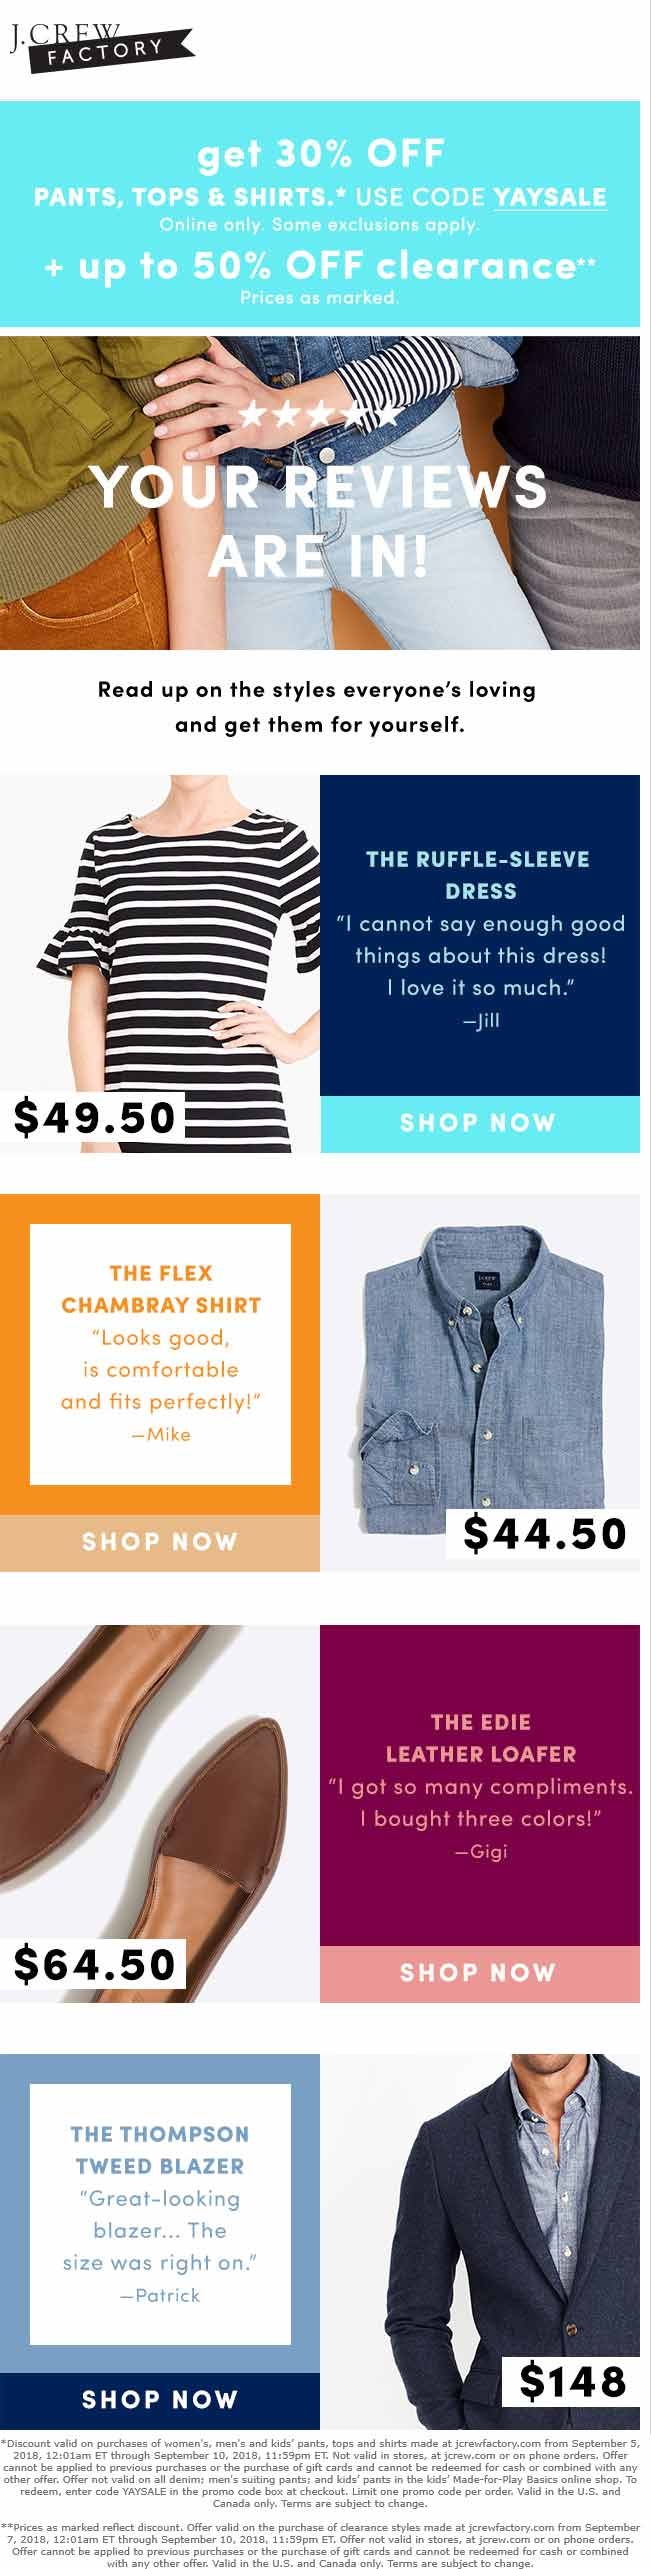 J.Crew Factory Coupon July 2019 30% off online at J.Crew Factory via promo code YAYSALE